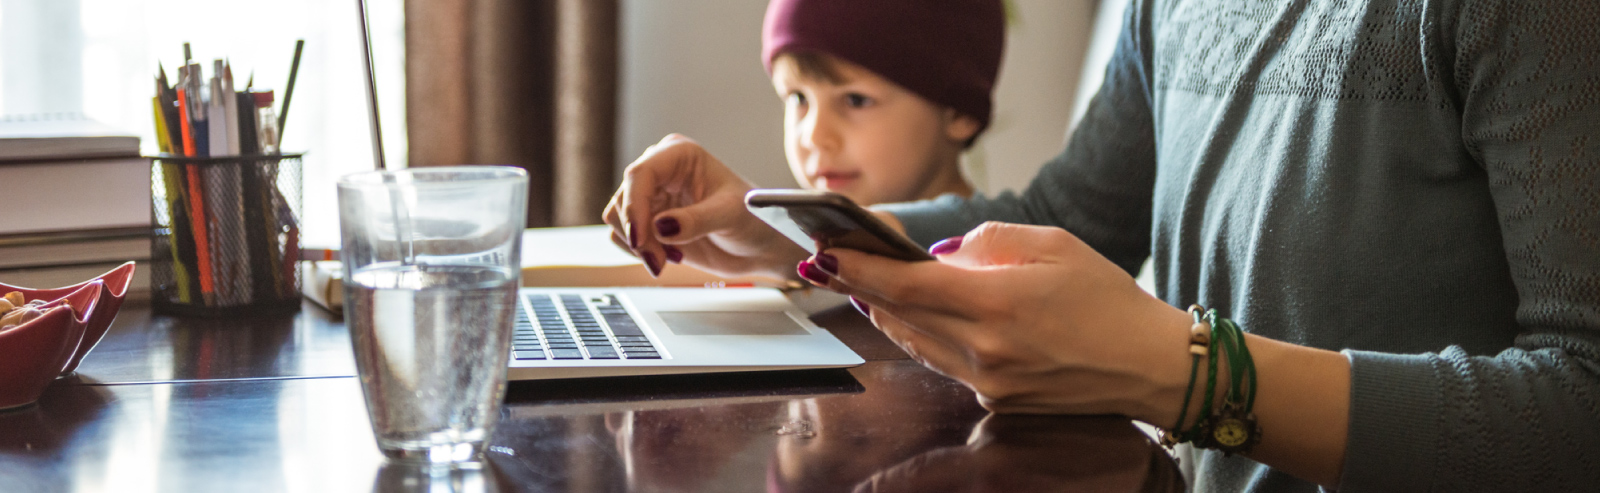 Man in front of laptop, holding phone with little boy beside him